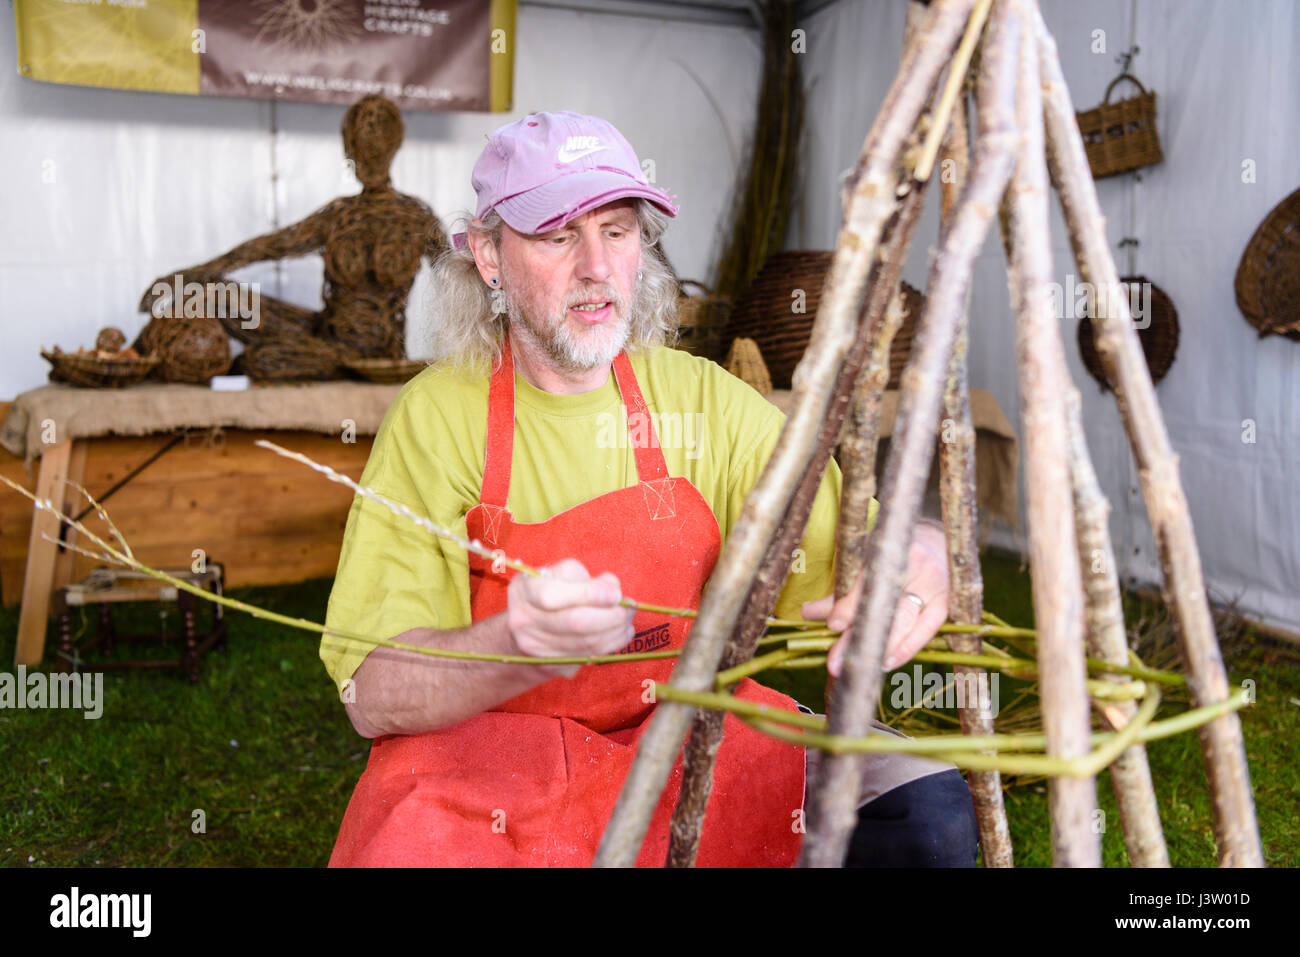 A male weaver begins weaving willow around a wooden frame - Stock Image